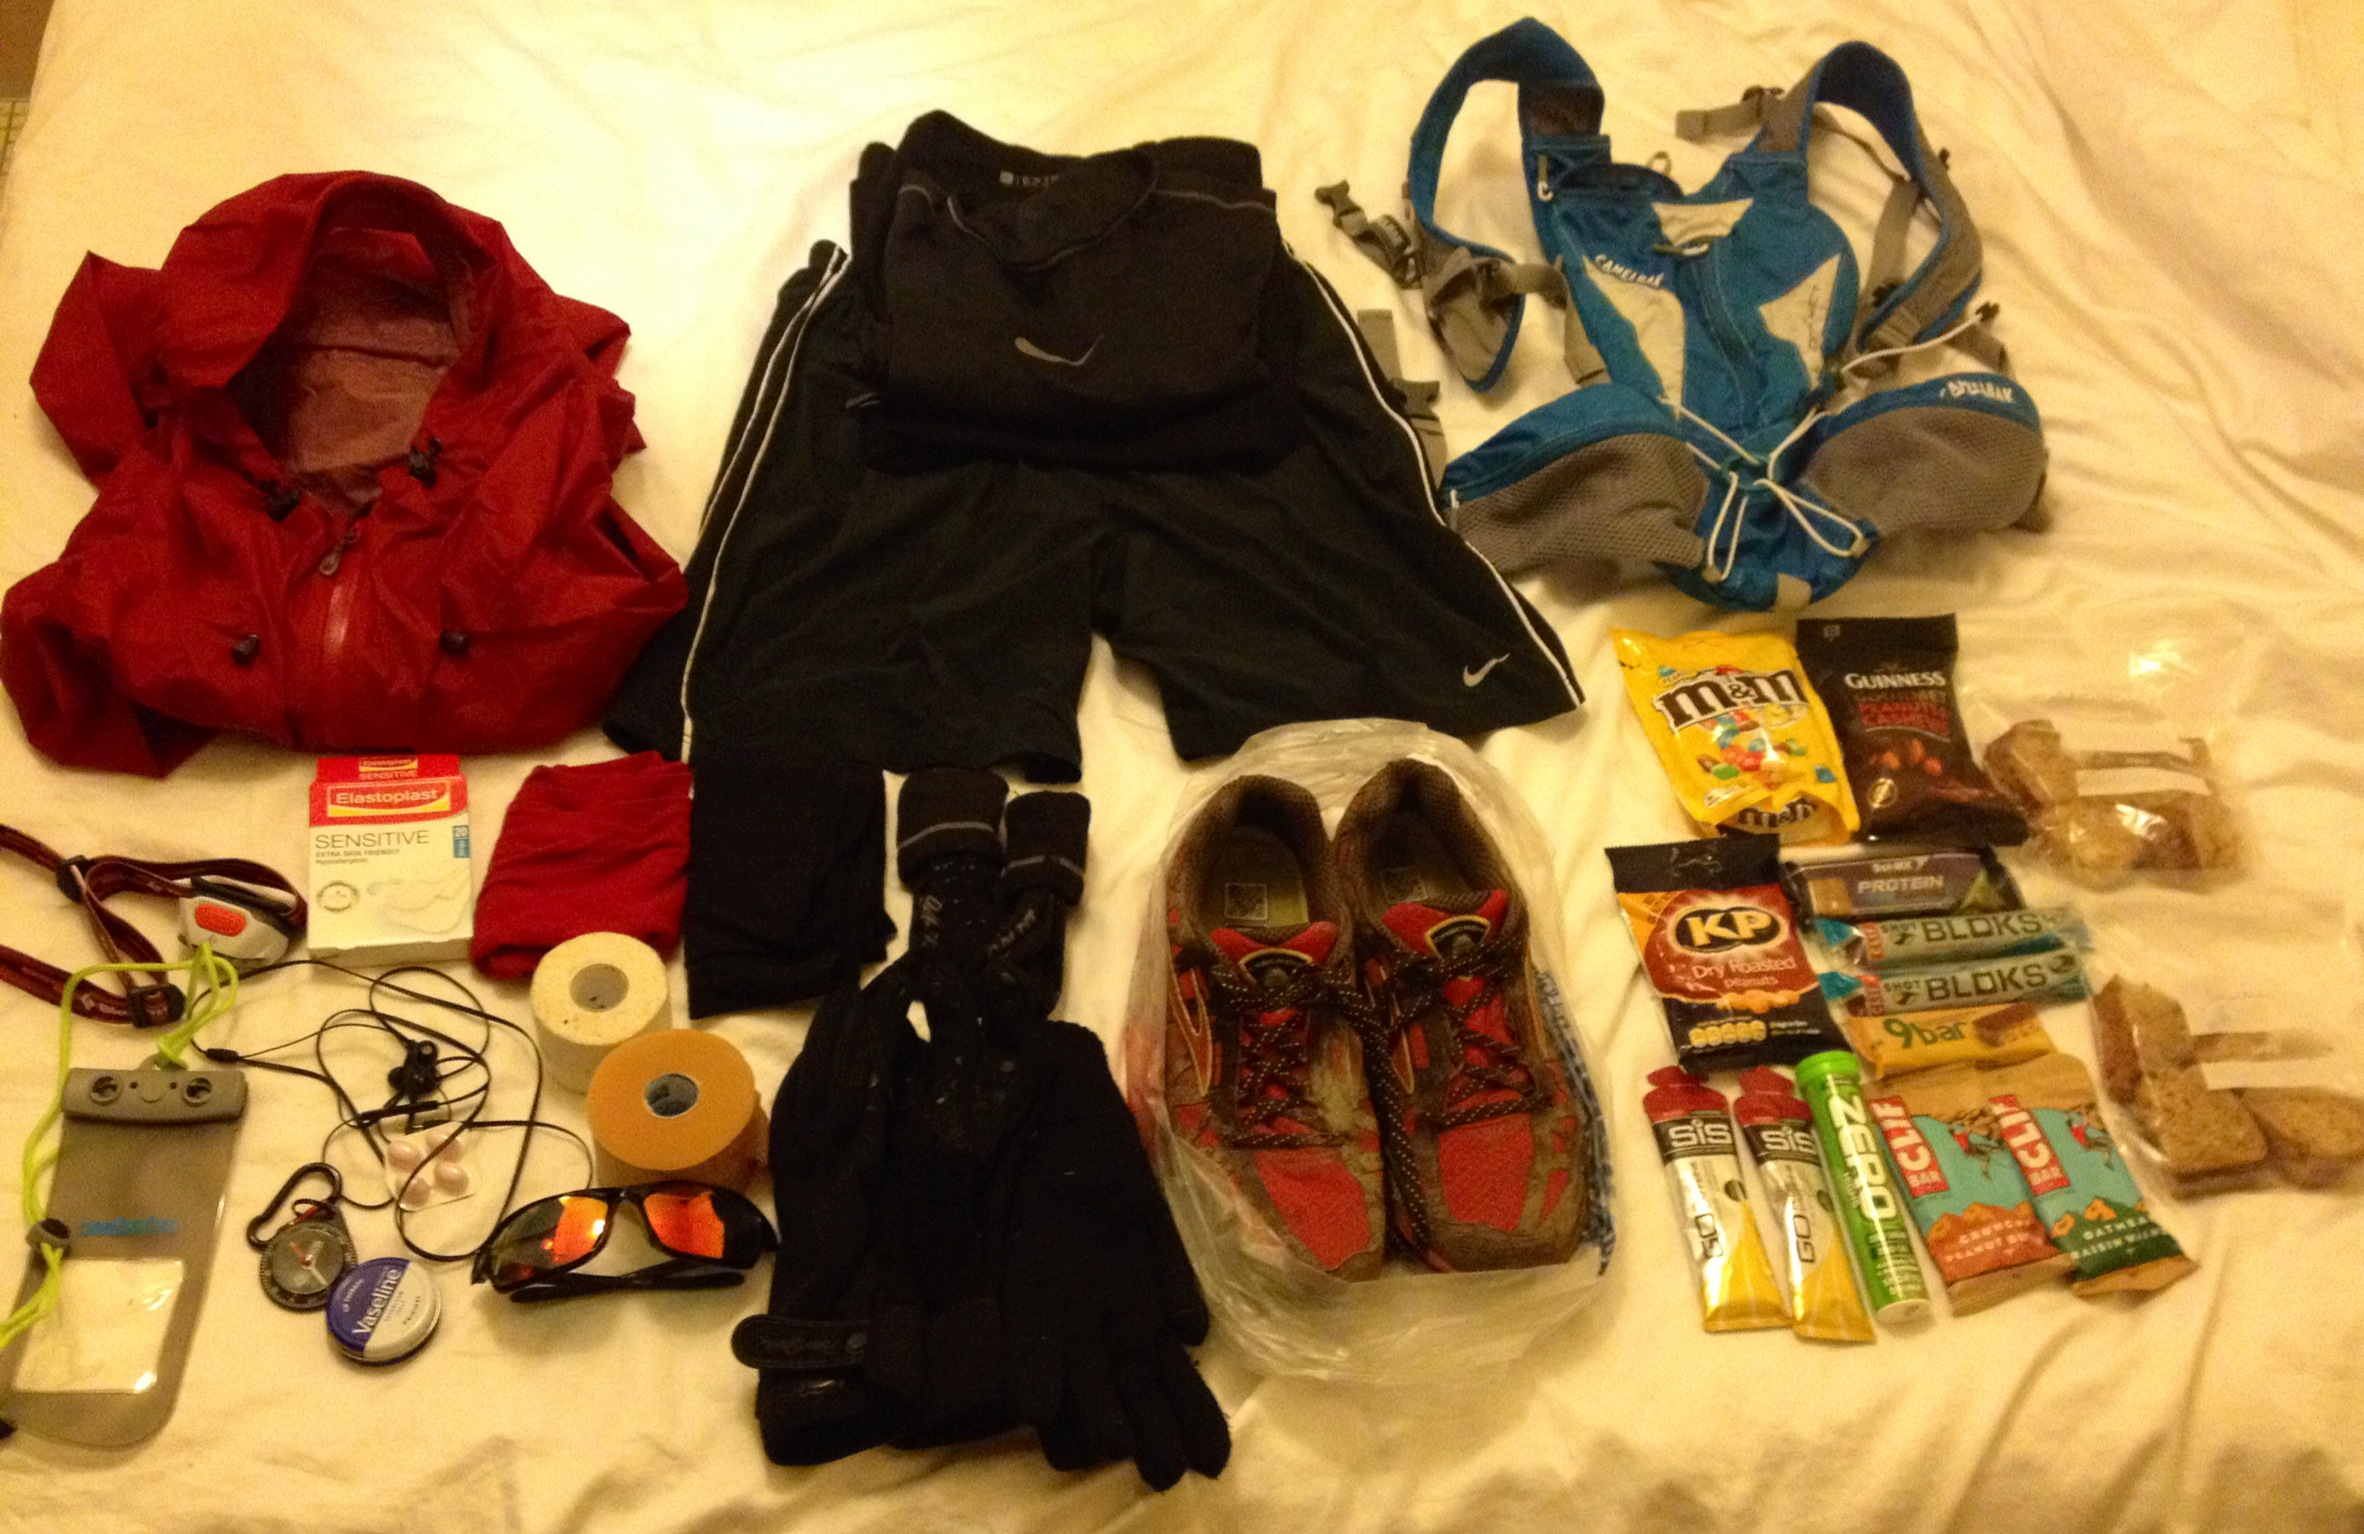 Laying out the kit on your bed and posting a photo of it to social media sites is a legal requirement for all ultra runners